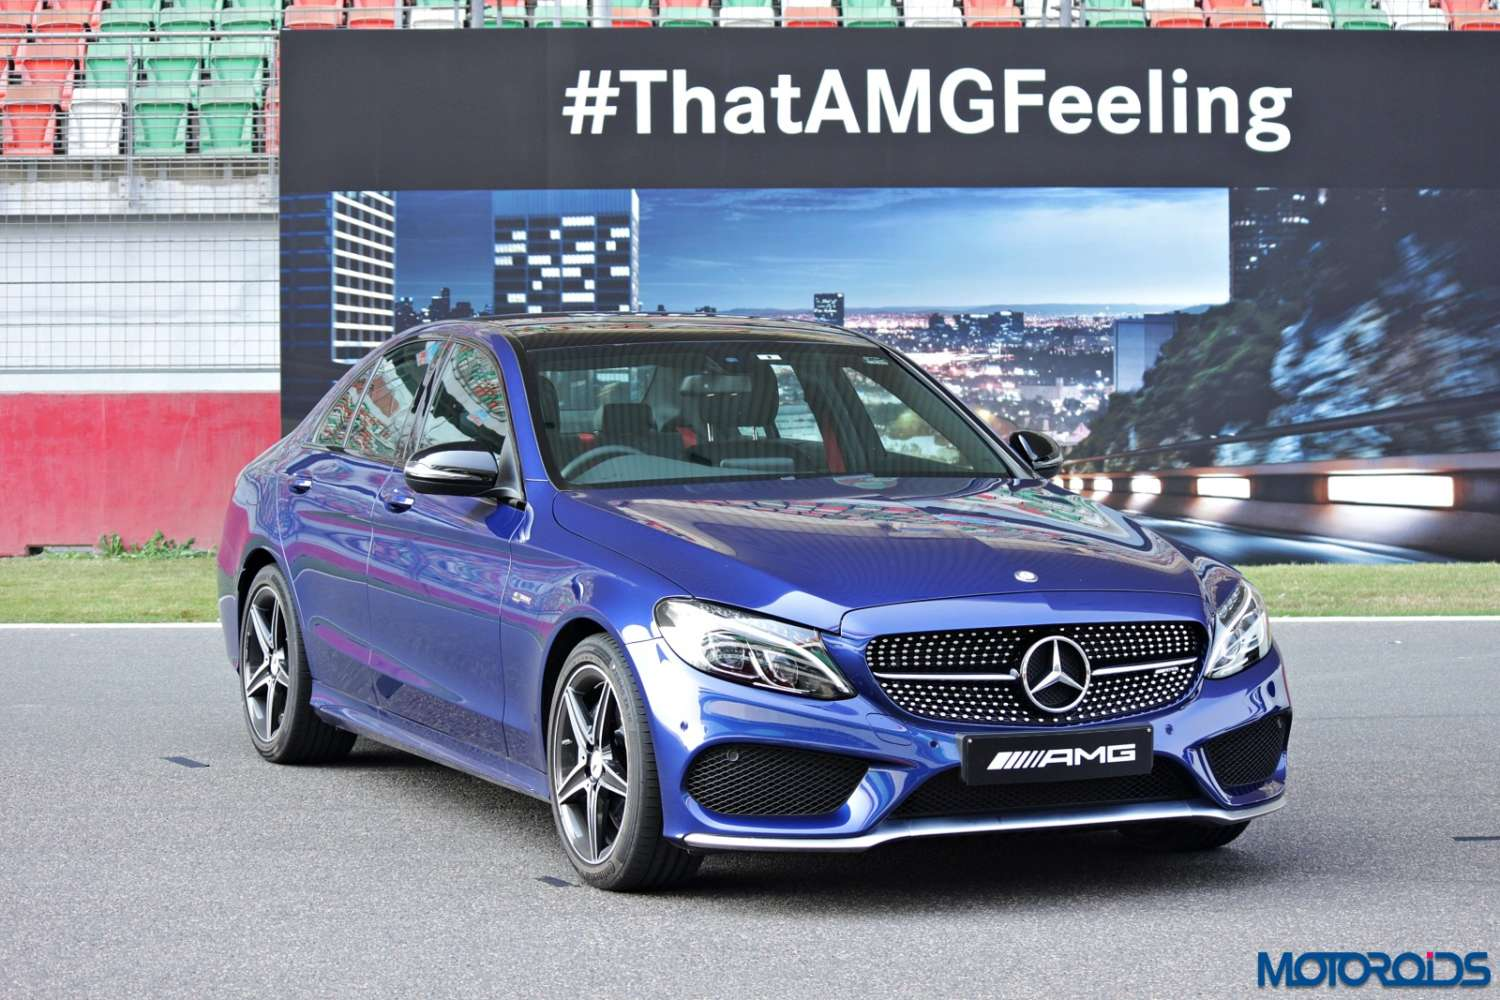 Mercedes benz c43 amg track review genial monstrosity for Where do they make mercedes benz